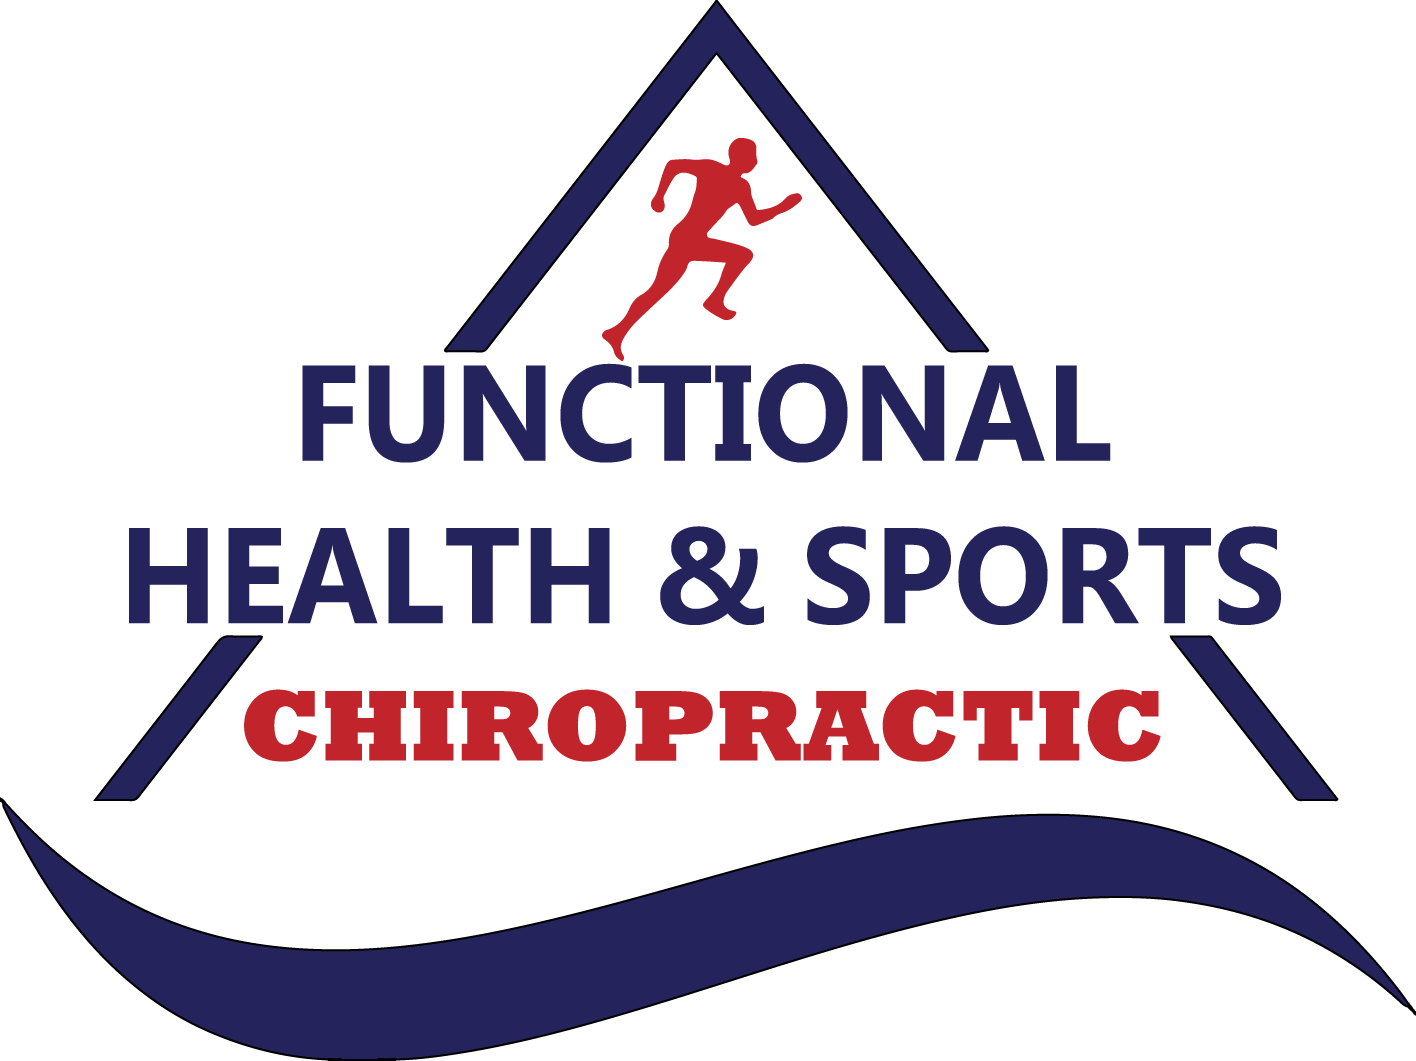 functional health Chiropractic - pediatric/pregnancy - clinical nutrition - functional medicine - acupuncture - graston technique.